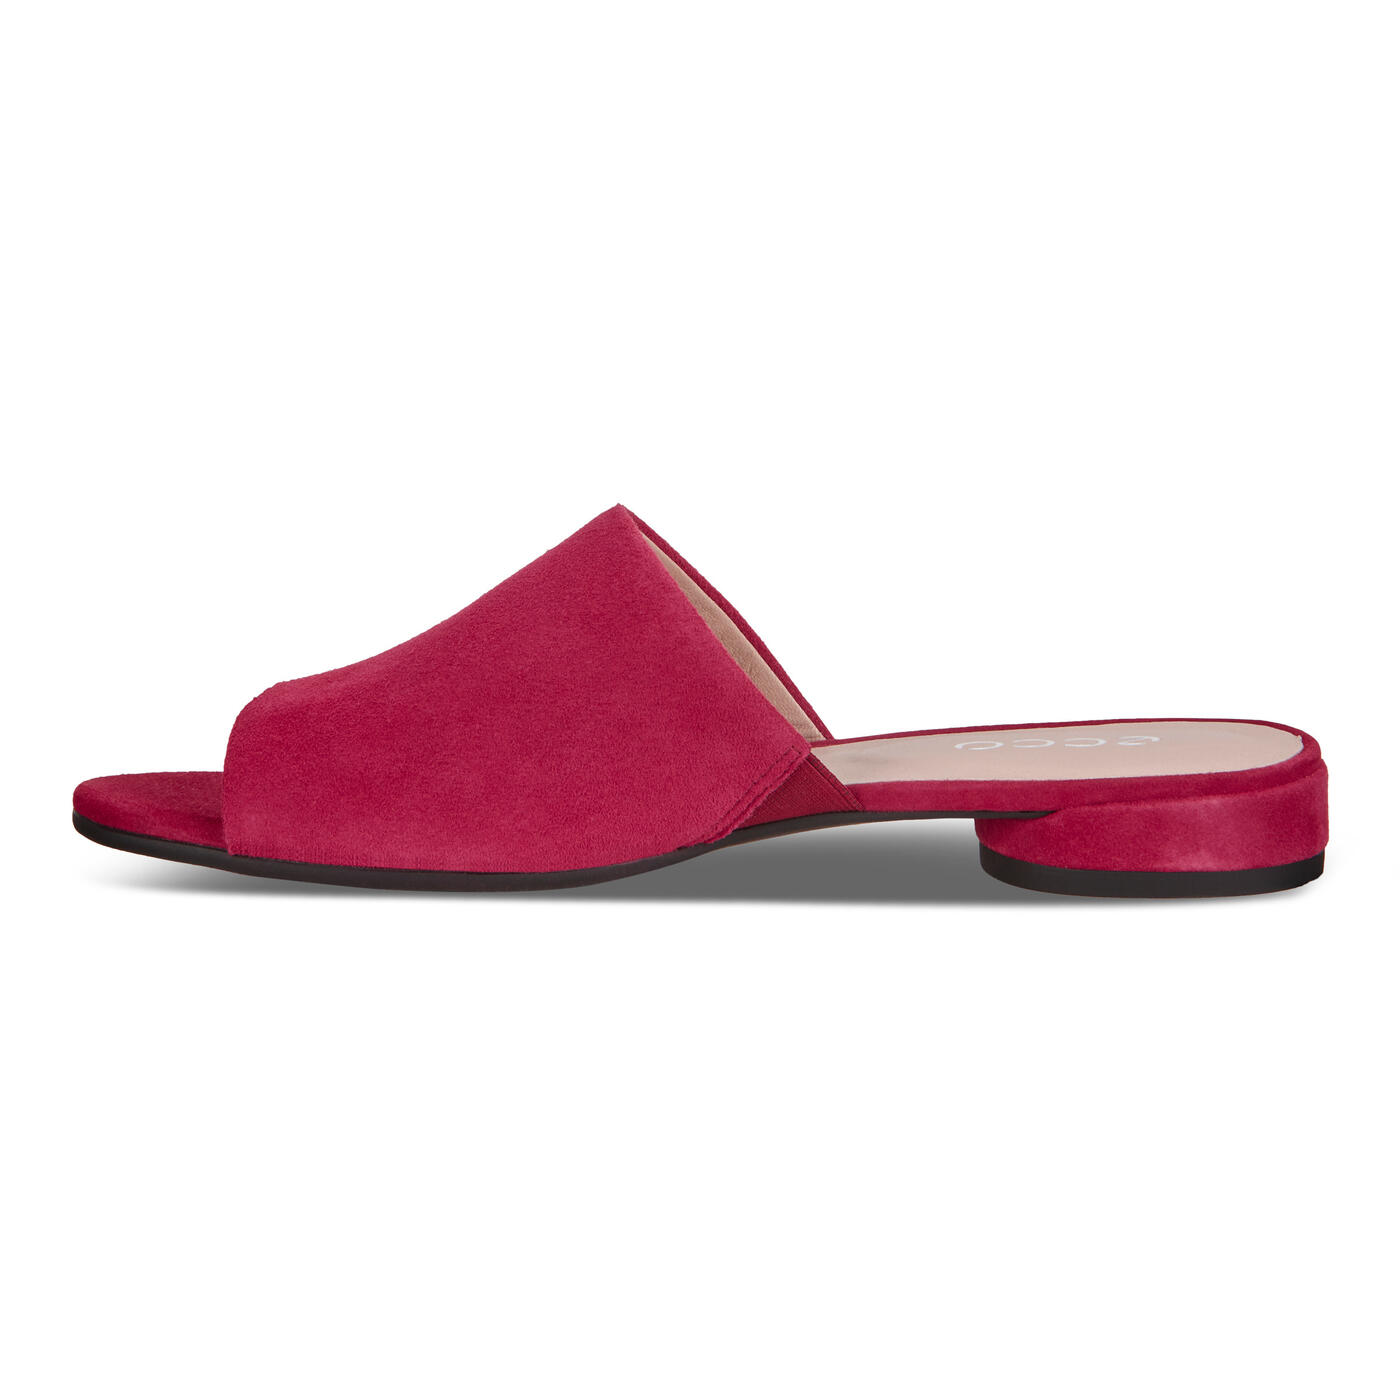 ECCO Women's Flat Slide Sandals II